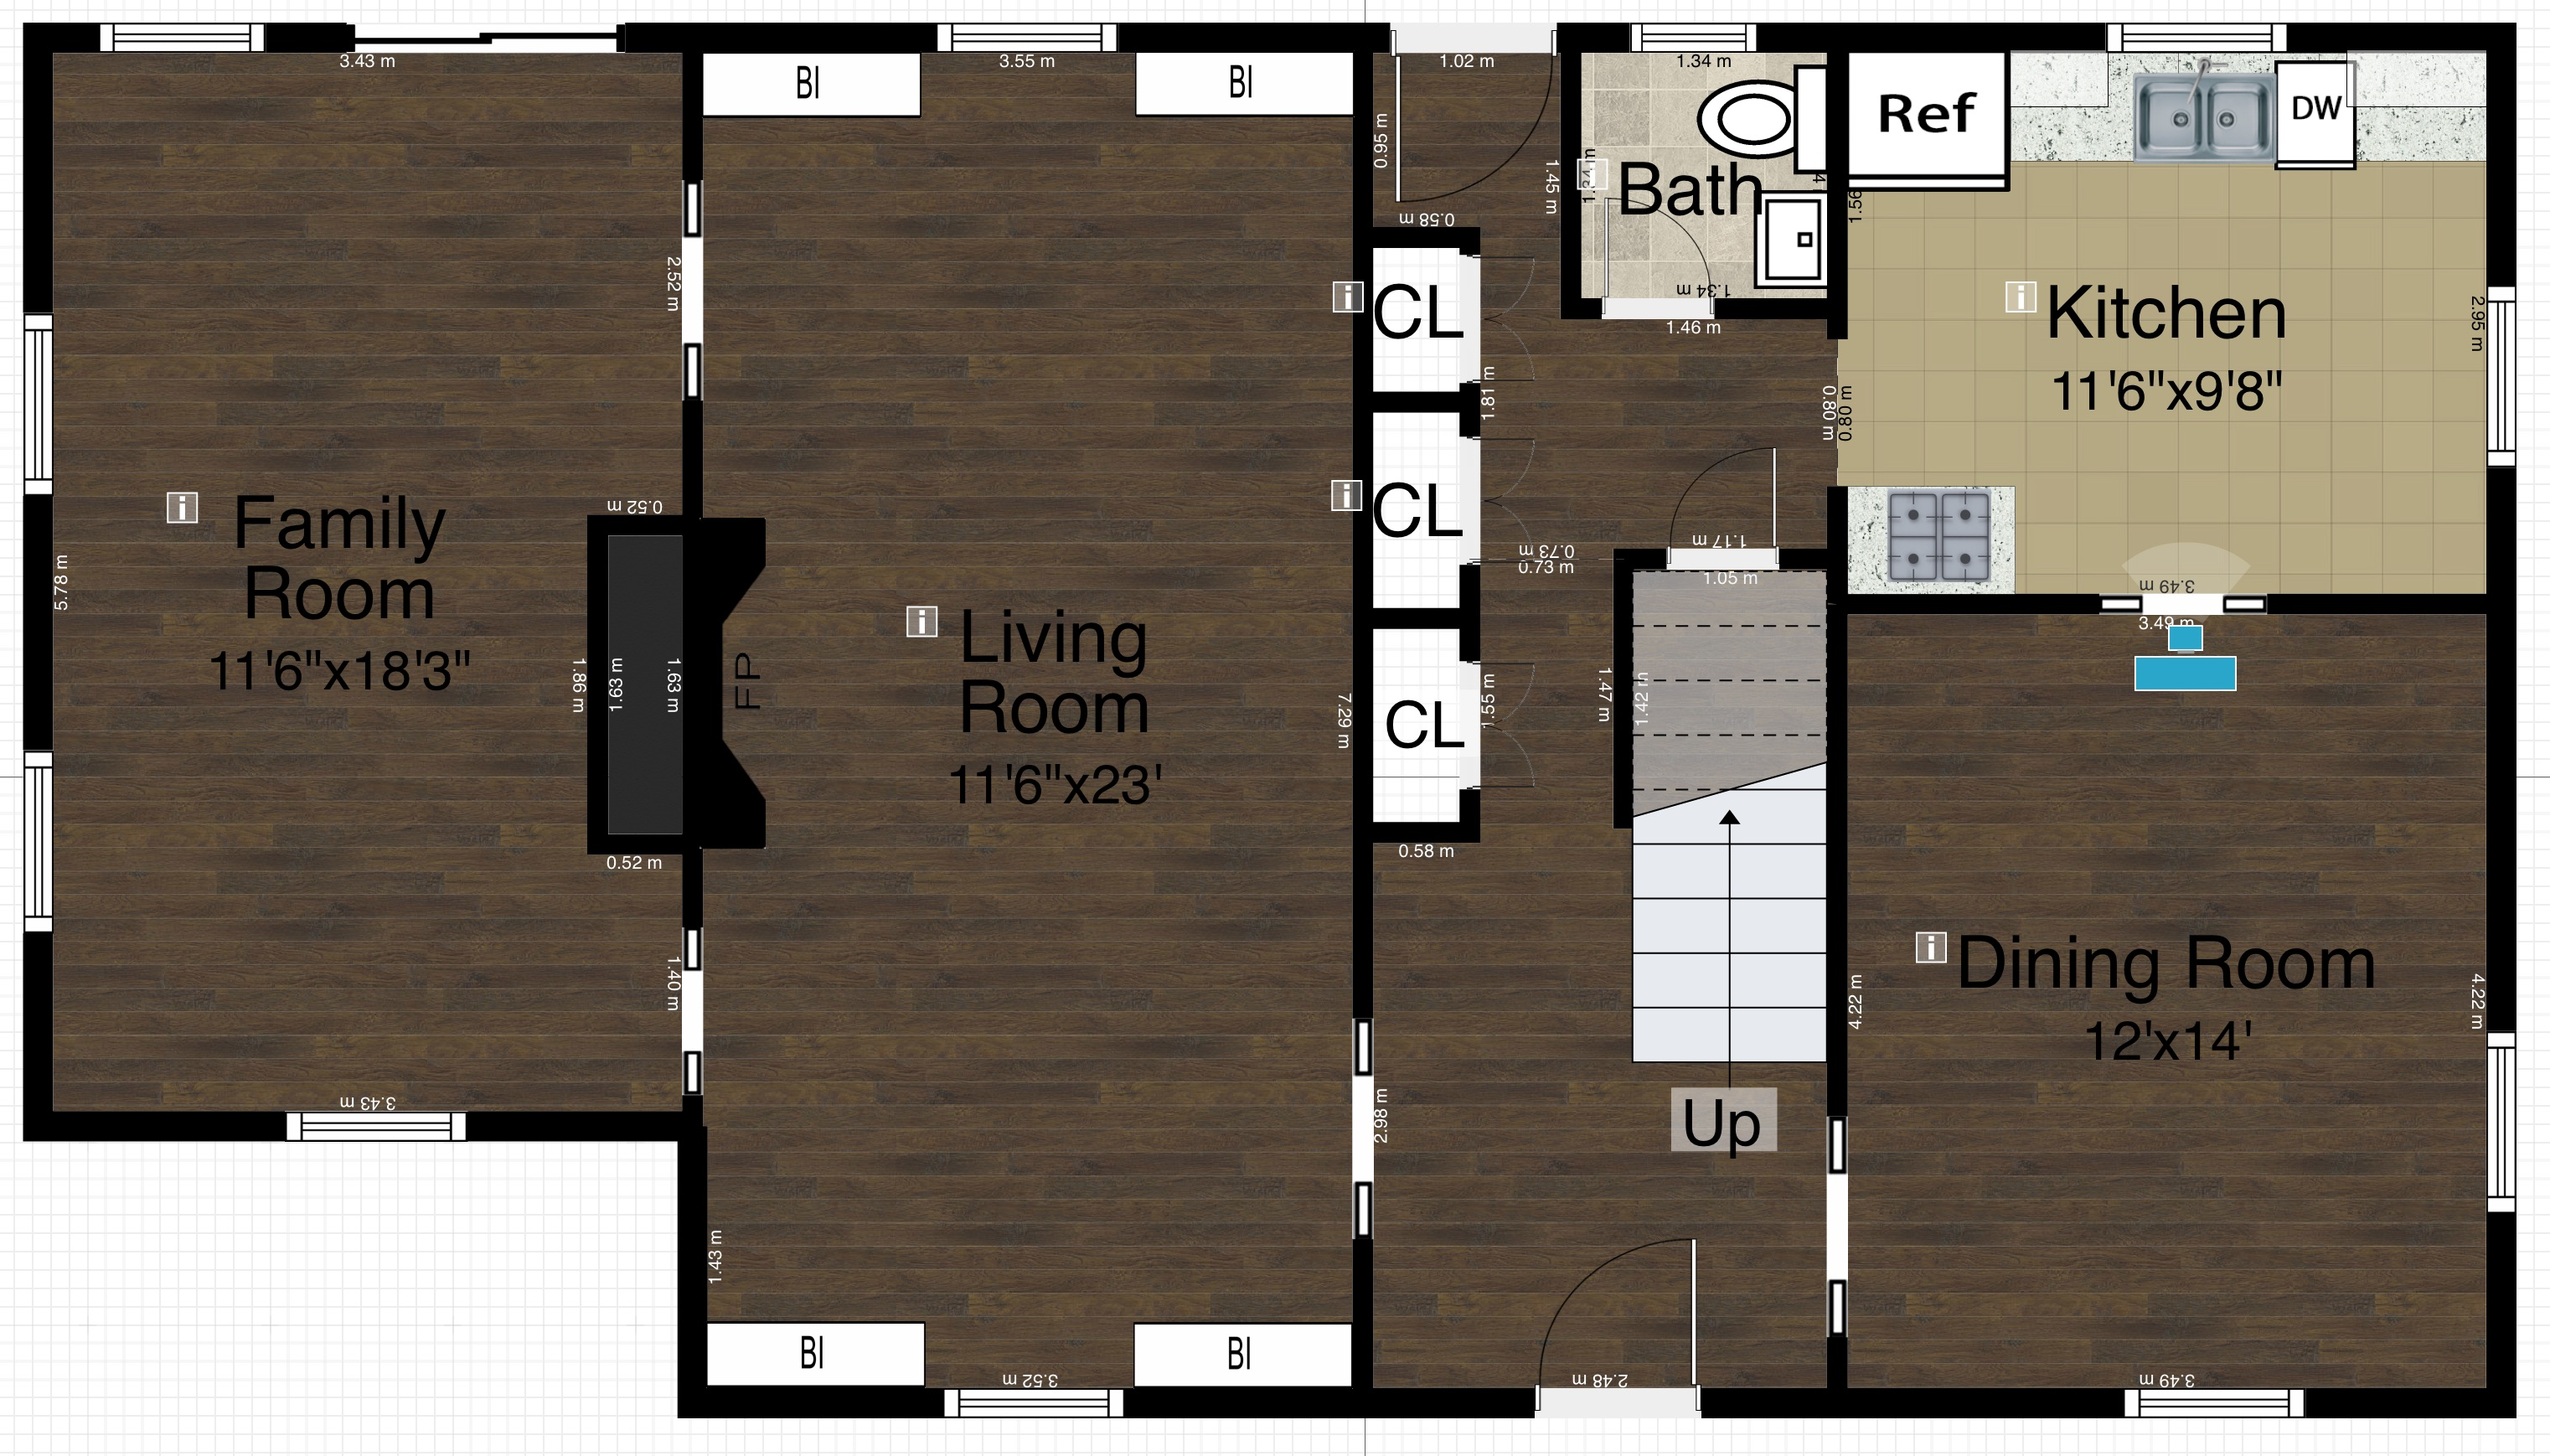 2D FloorPlan View